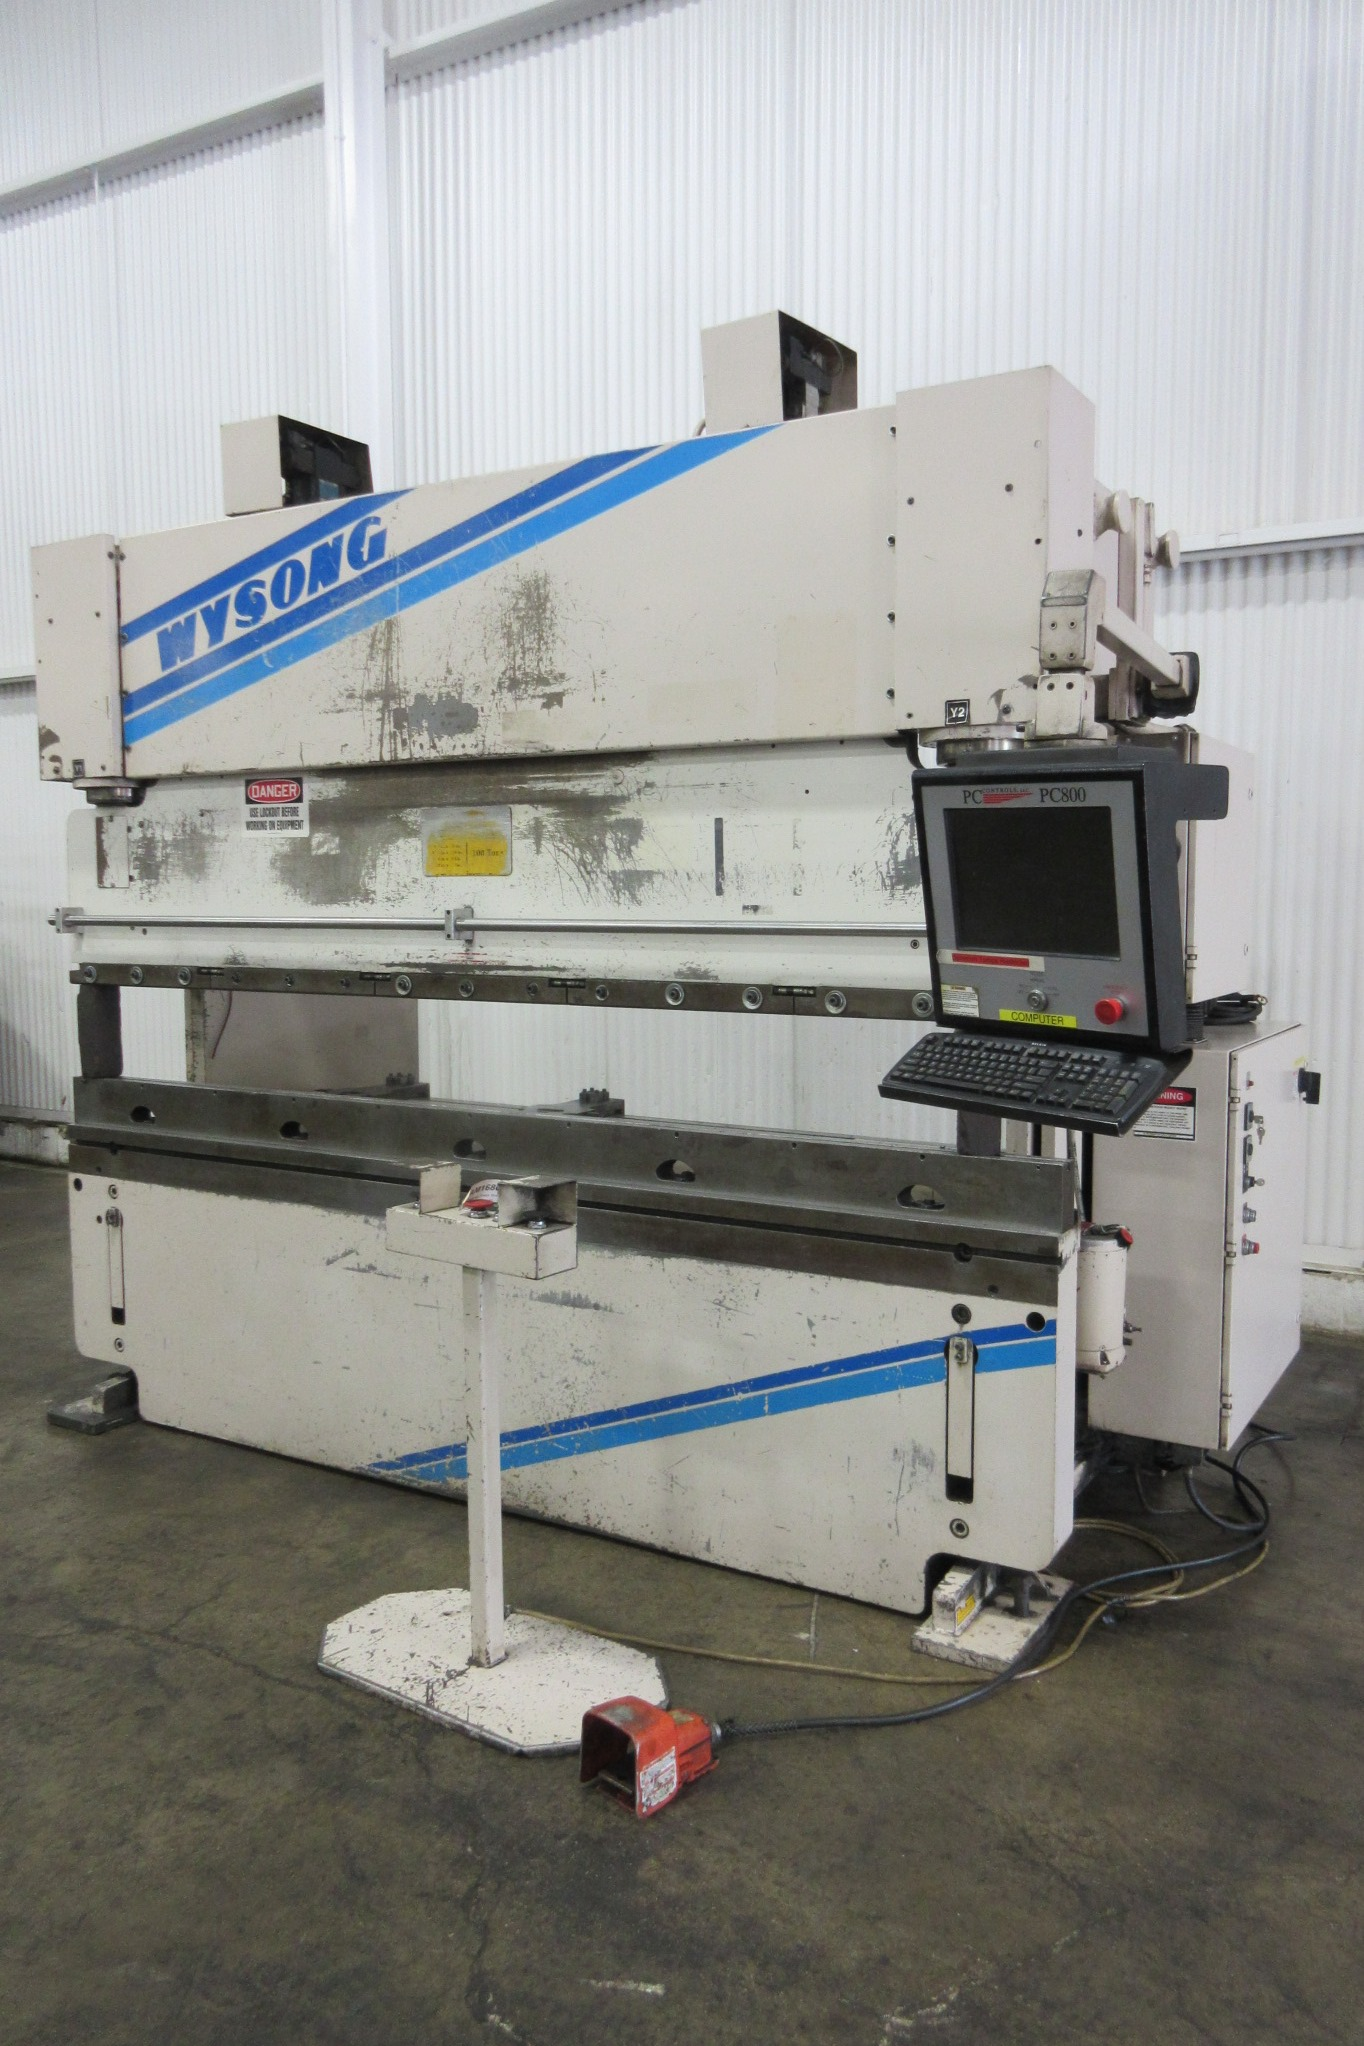 Surplus Capital Equipment from Various Midwest Manufacturing Plants